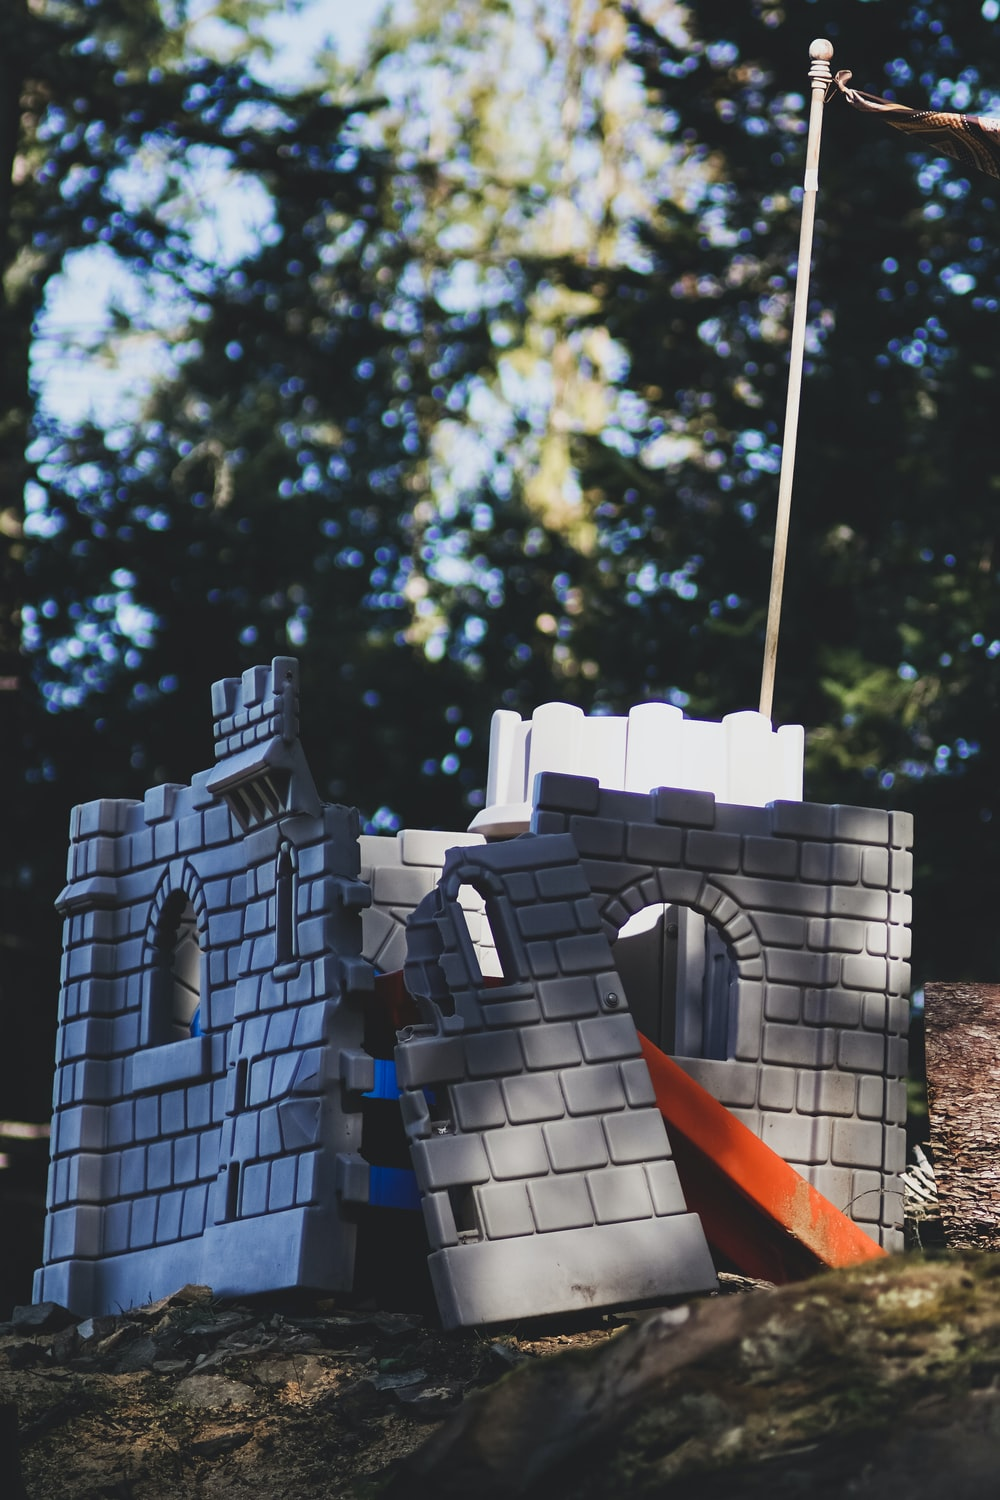 castle playhouse near trees during day